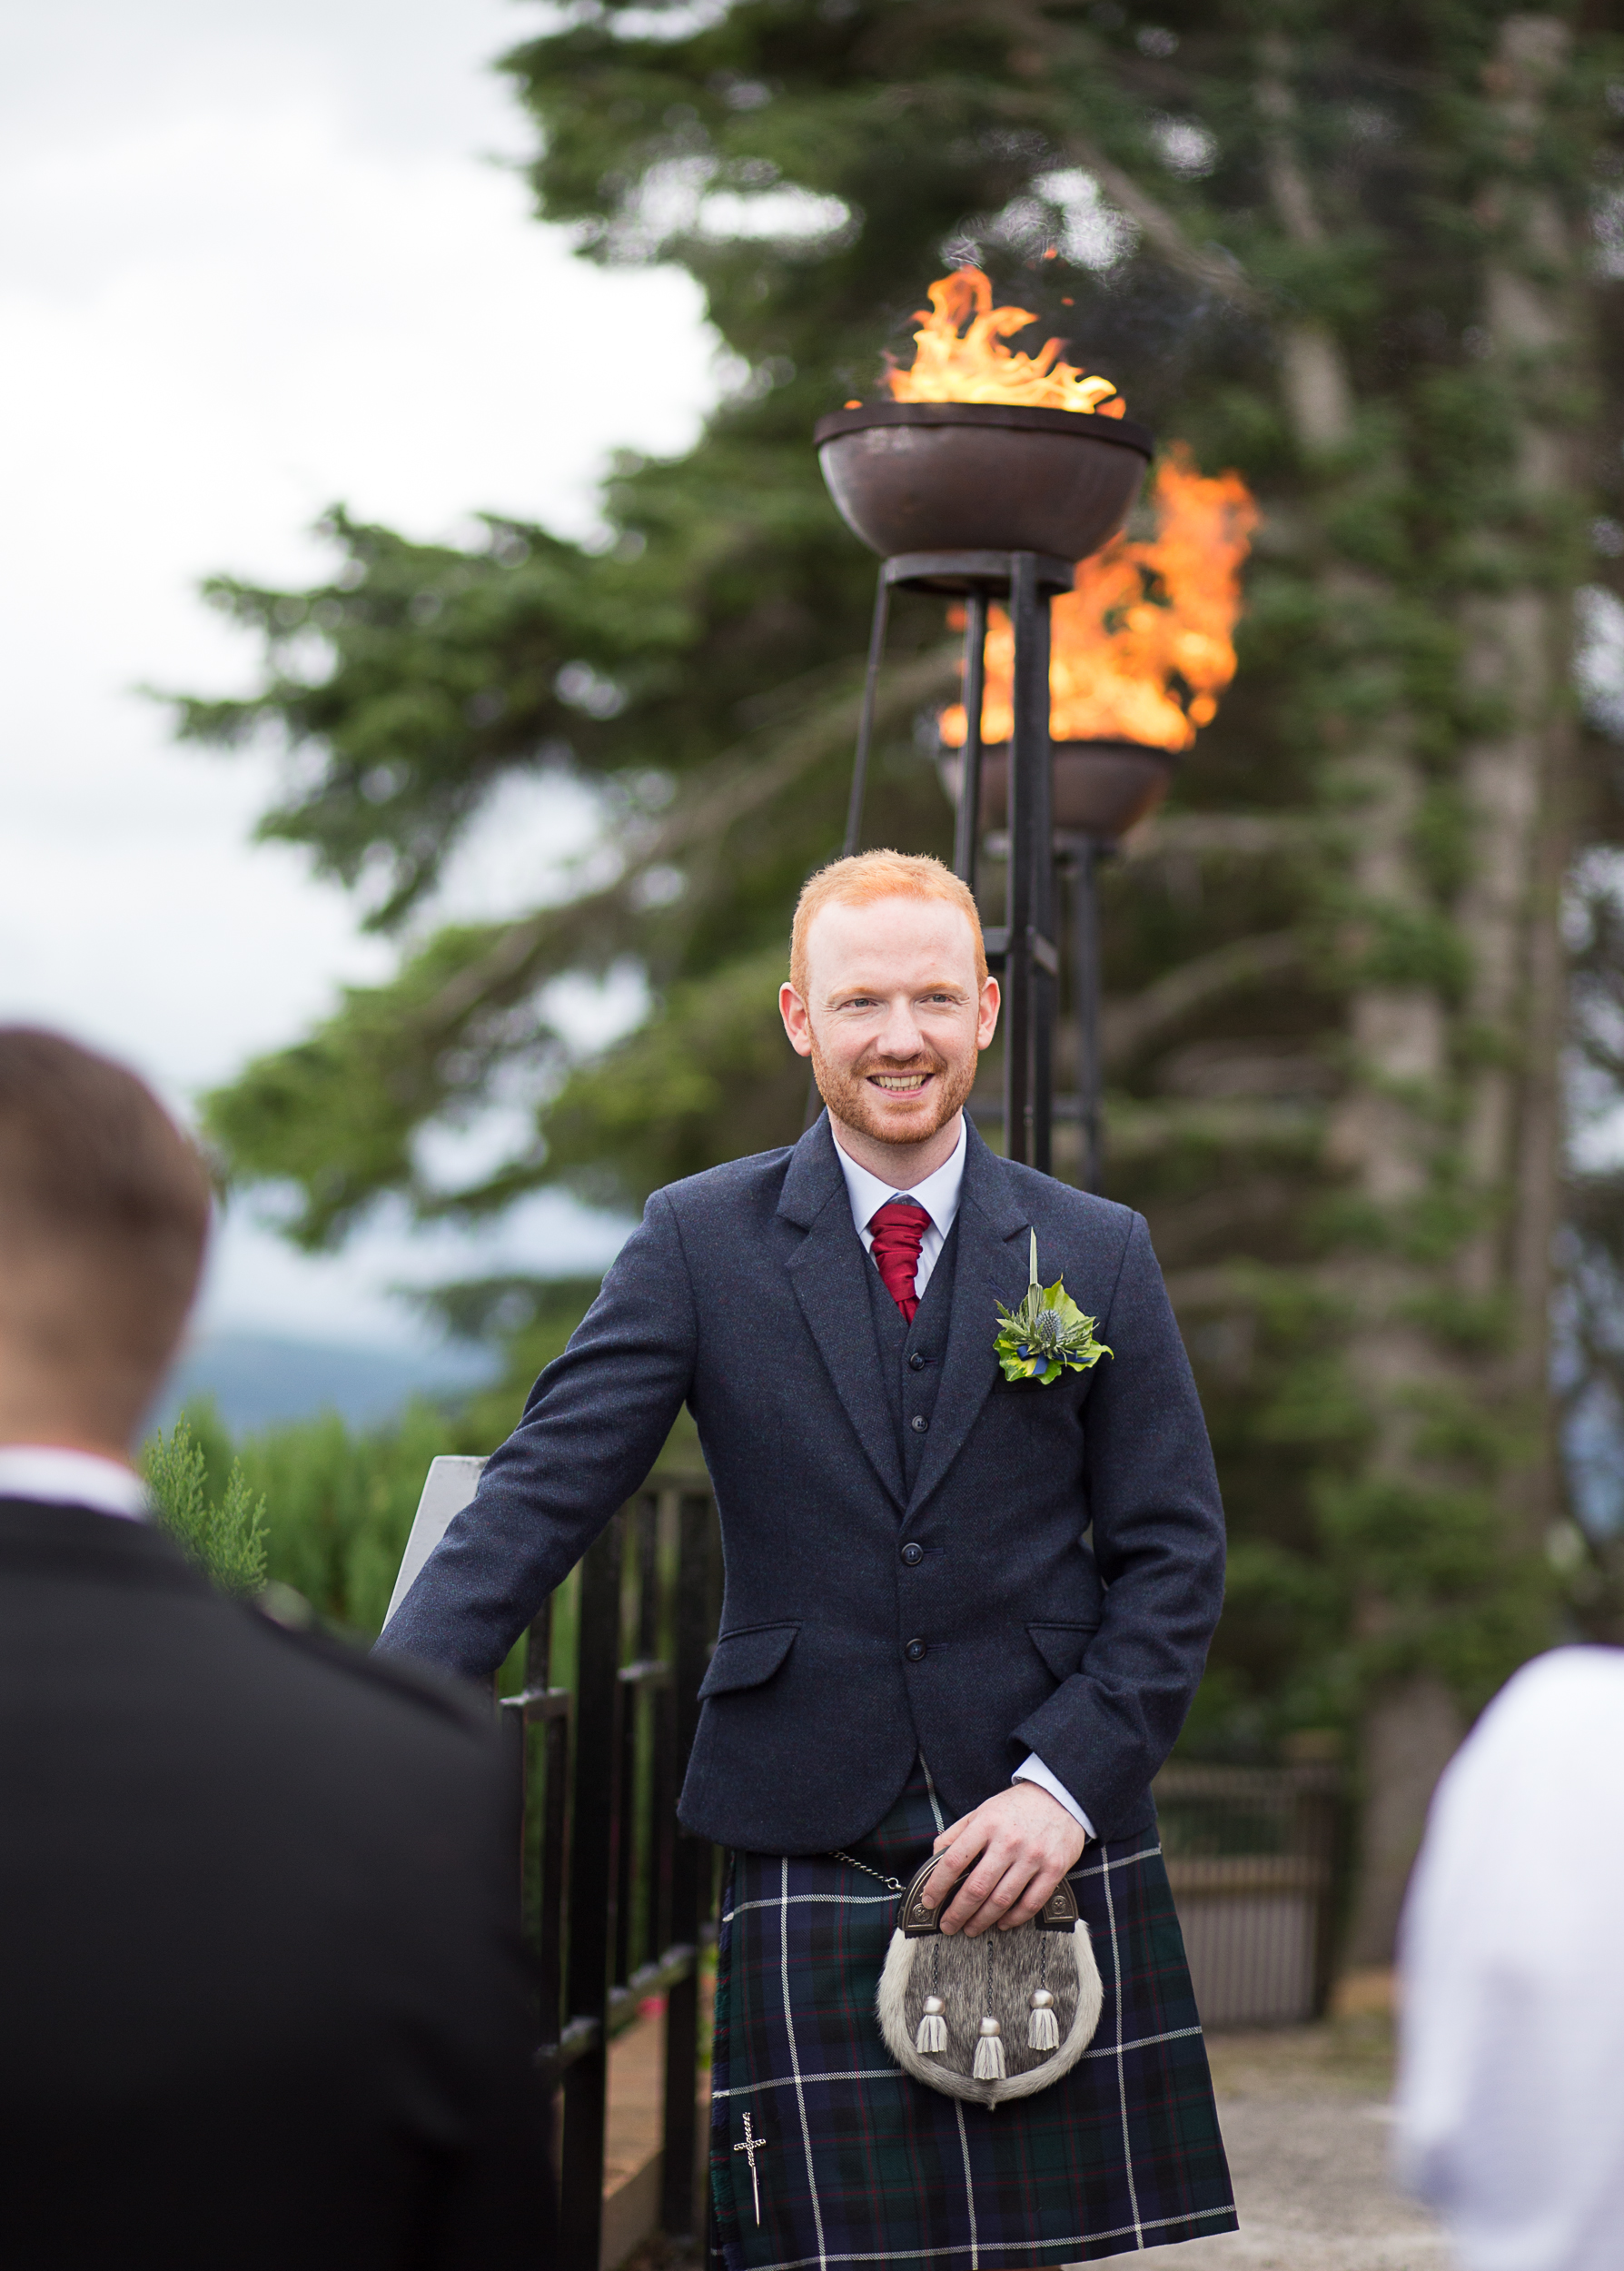 aberdeenshire wedding photography, aberdeen wedding photographer, wedding photography aberdeen